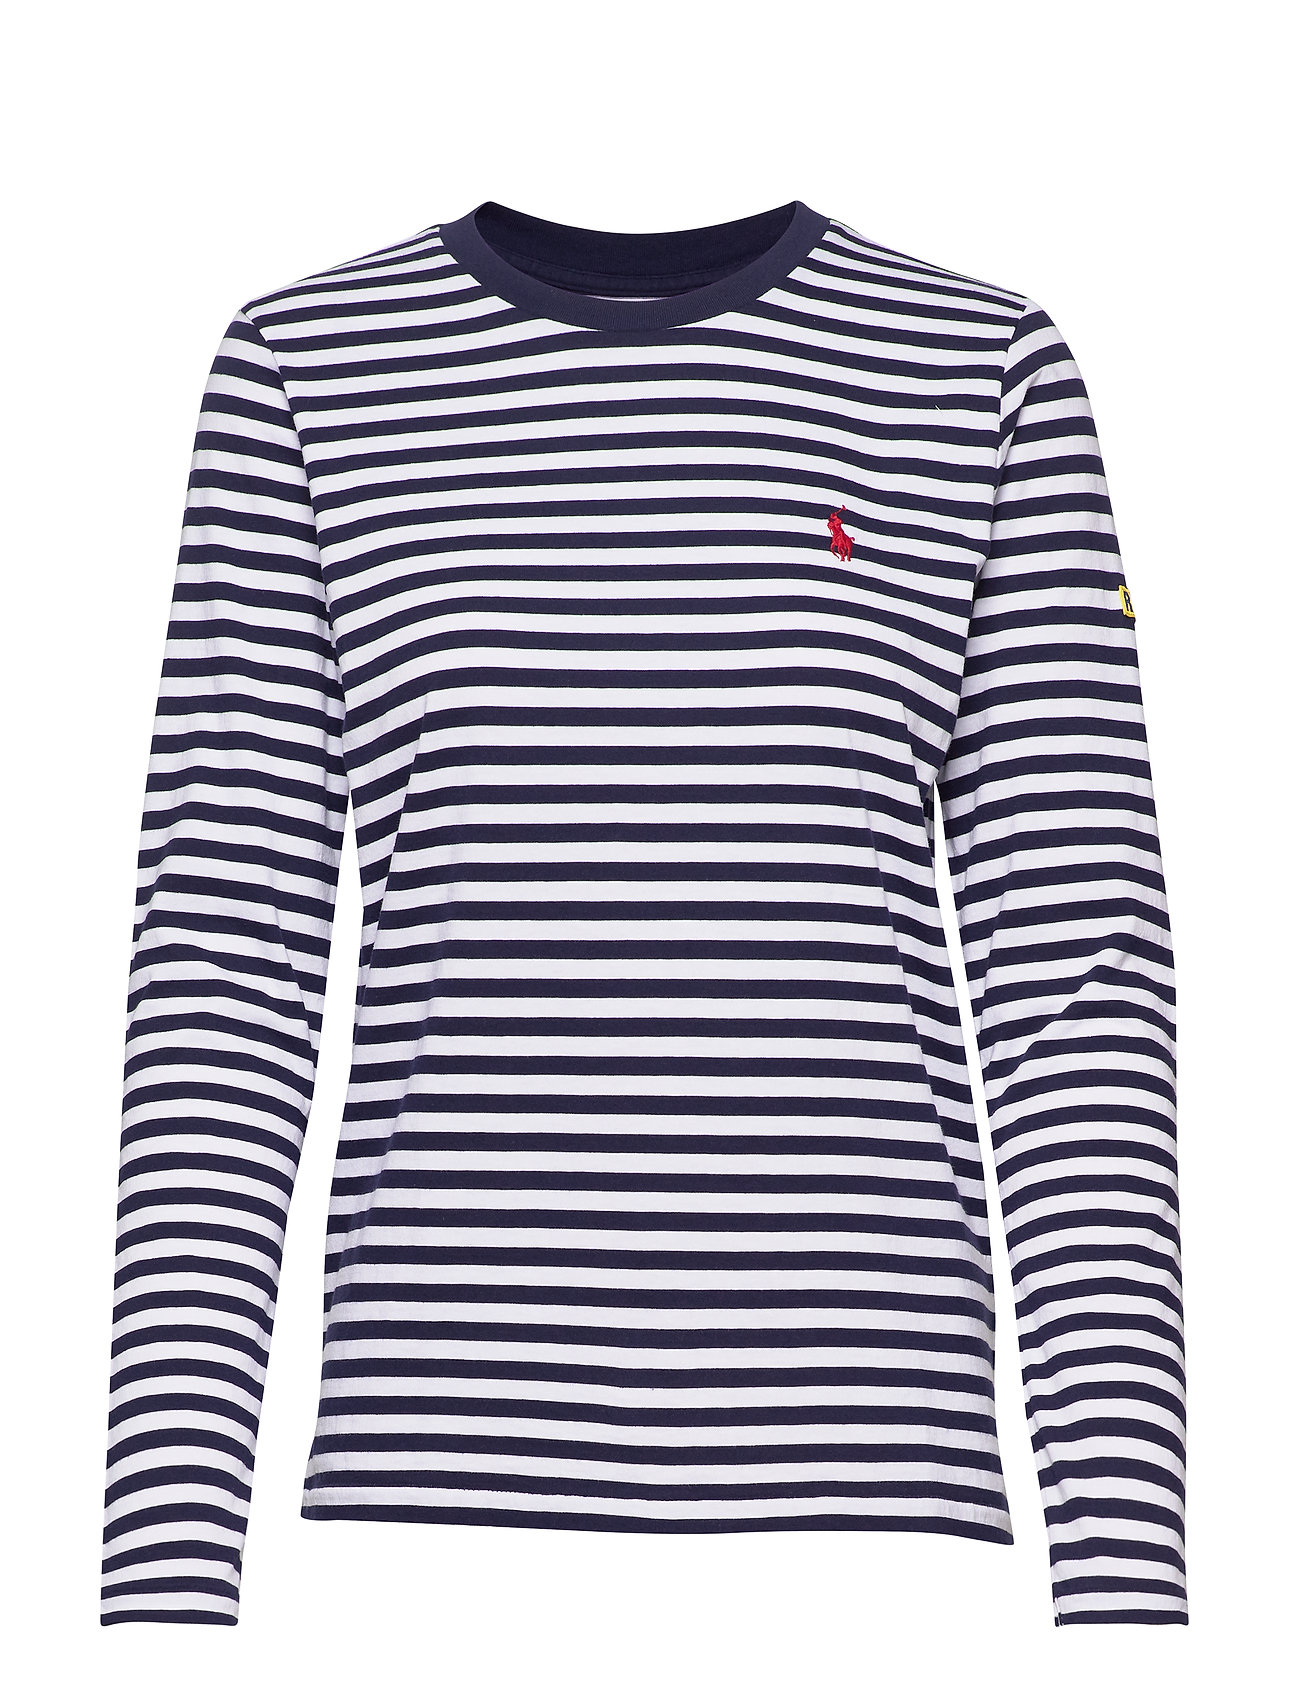 Polo Ralph Lauren Striped Long-Sleeve Tee - CRUISE NAVY/ WHIT